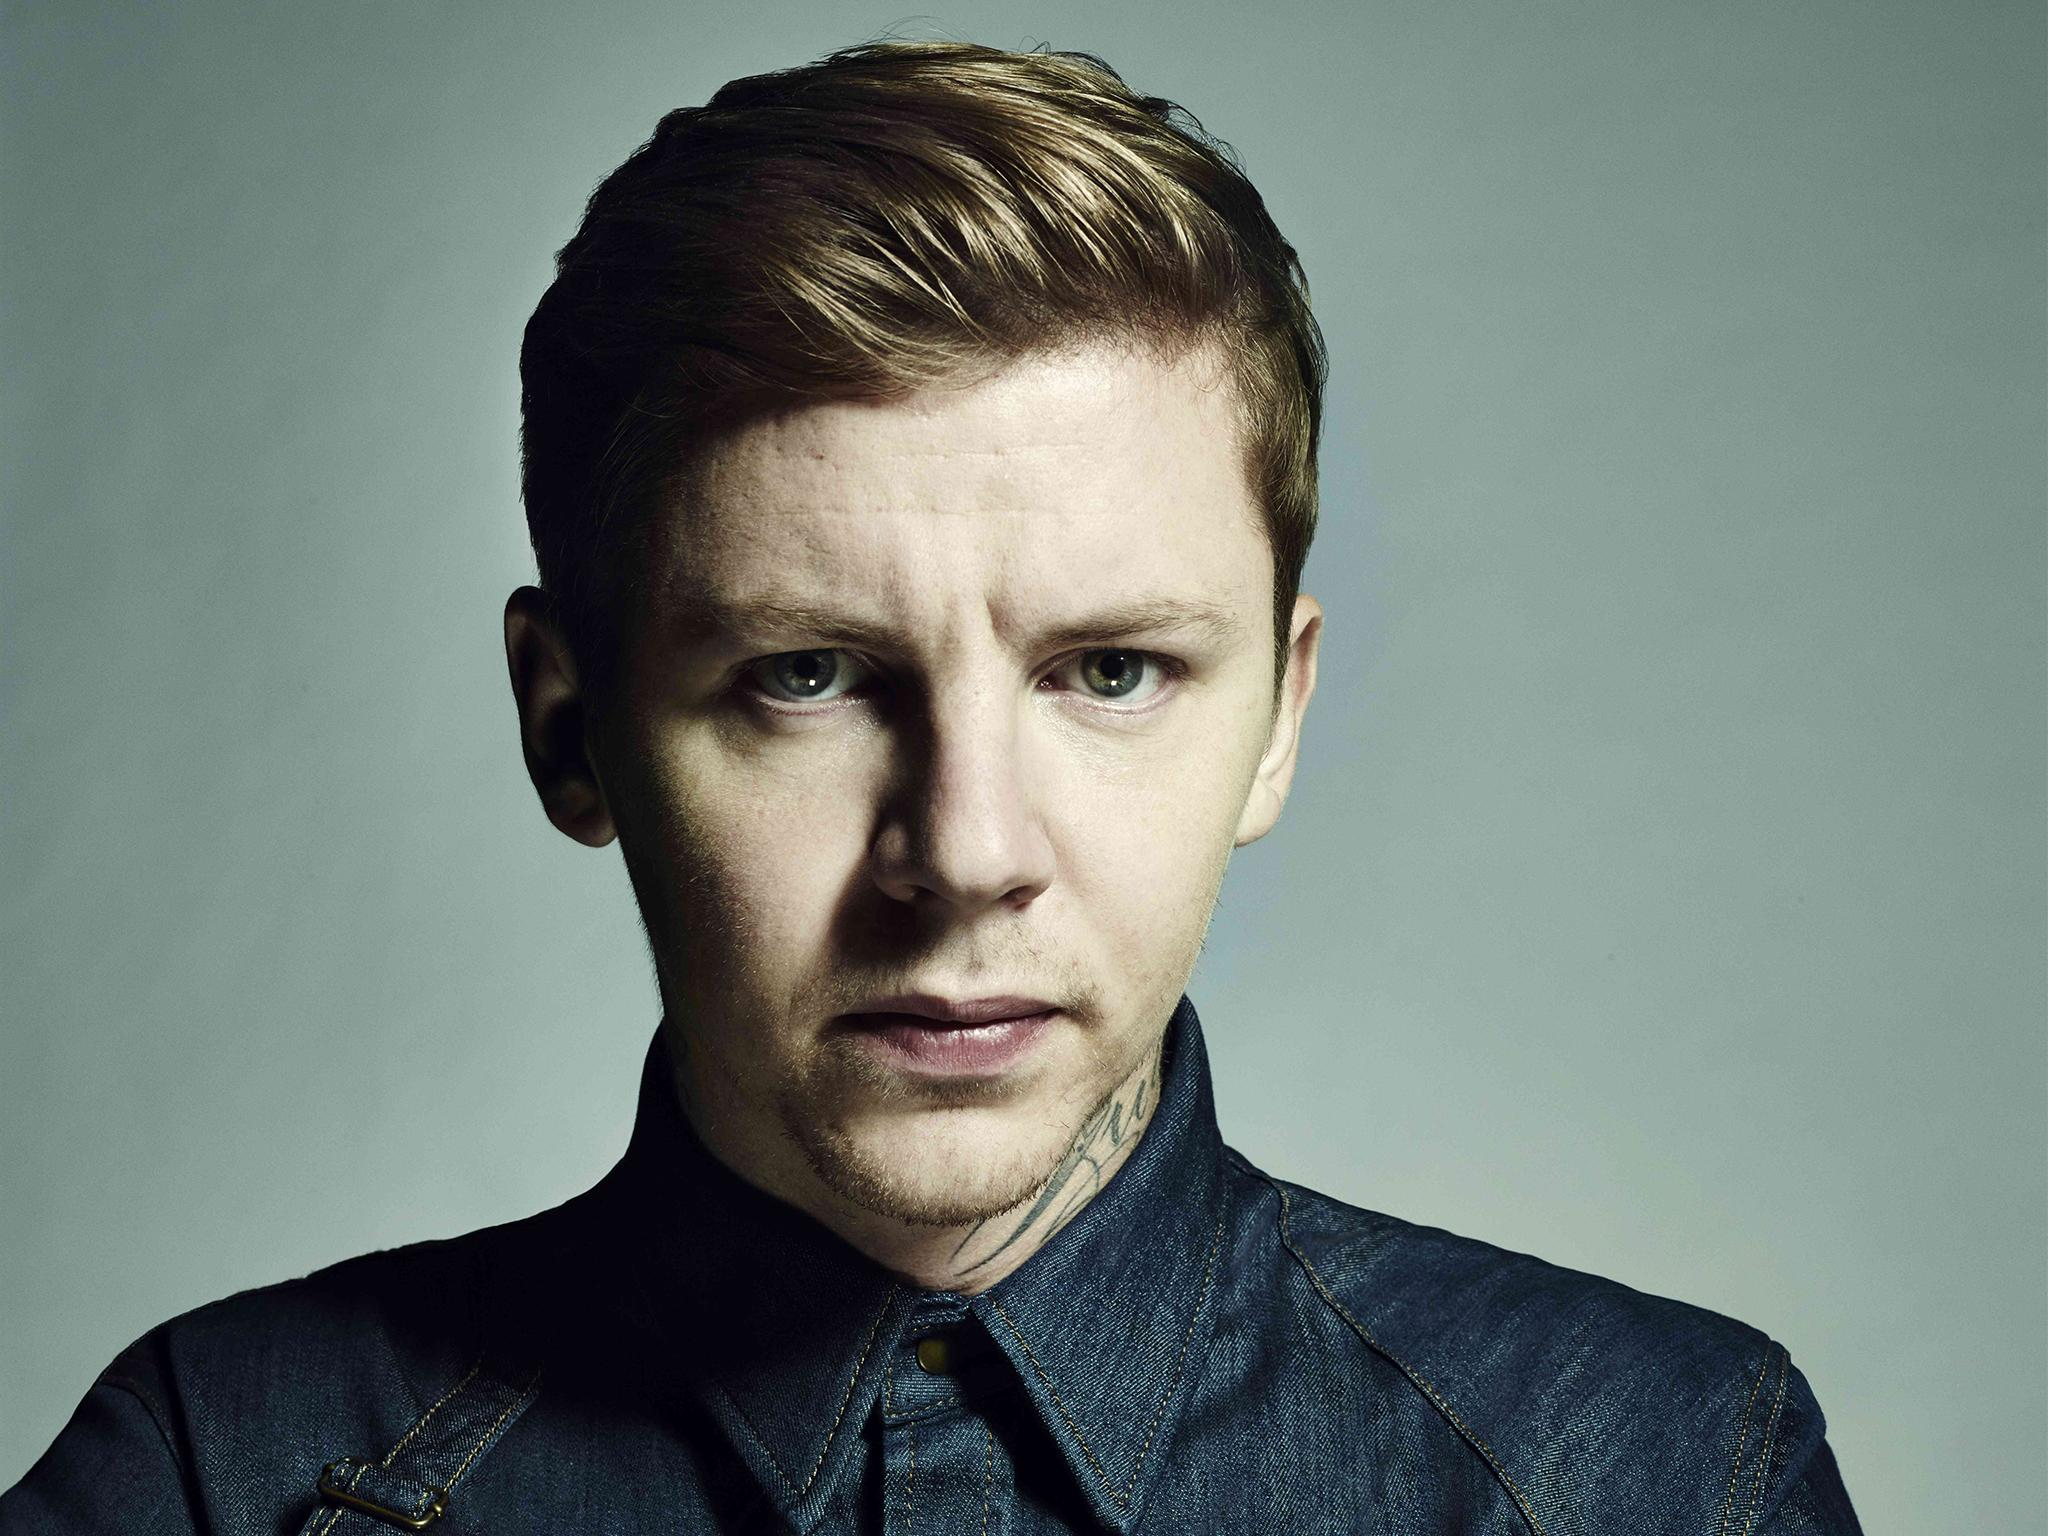 Professor Green Named Patron Of Calm Talking And Asking For Help When Things Go Bad Is What Everyone Should Be Able To Do